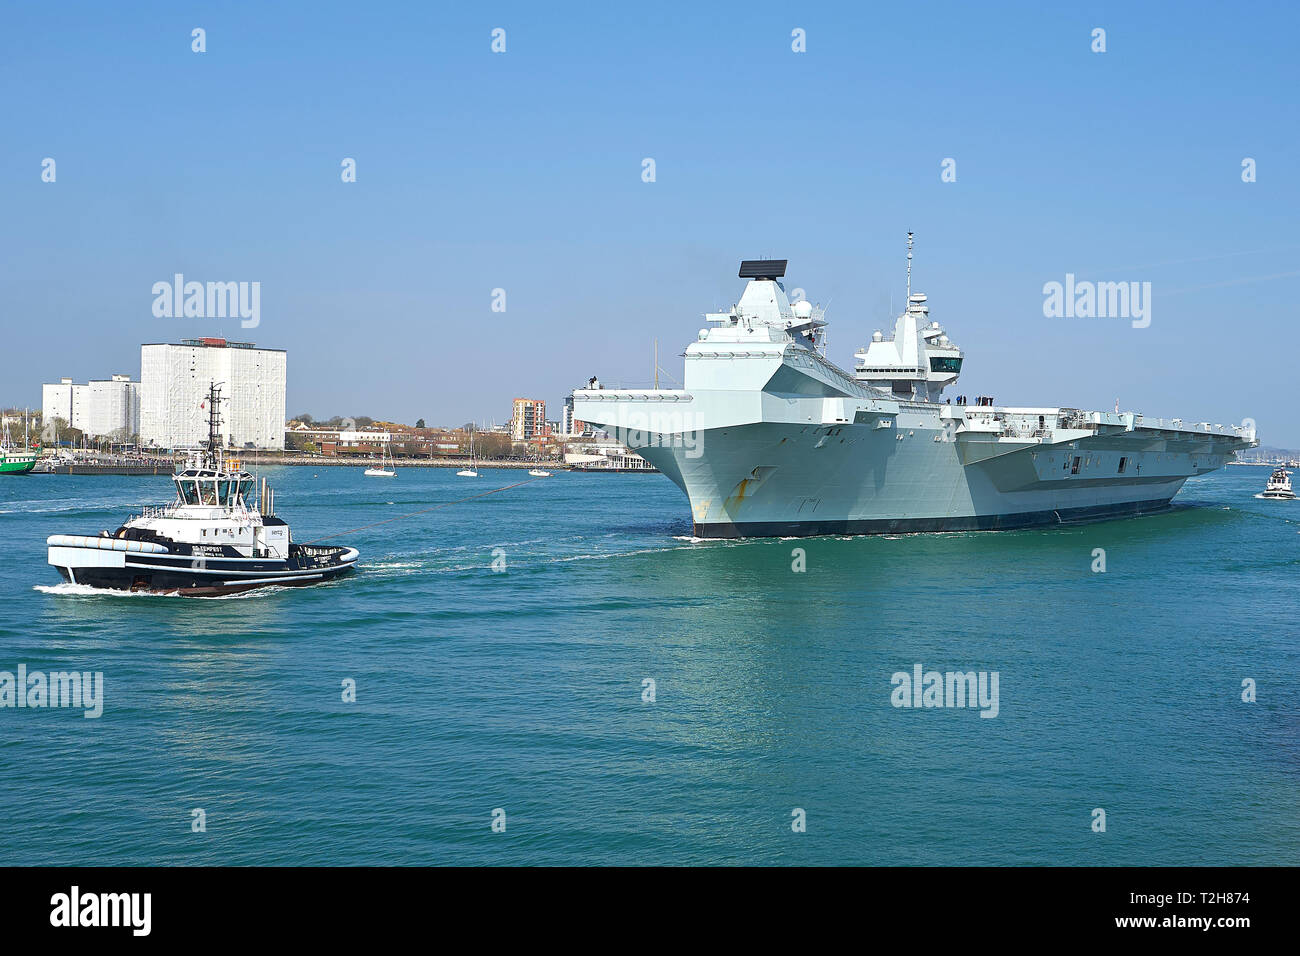 The Royal Navy Aircraft Carrier, HMS QUEEN ELIZABETH, Being Assisted Tug, SD TEMPEST, As She Departs Portsmouth For Rosyth, Scotland. 01 April 2019. - Stock Image